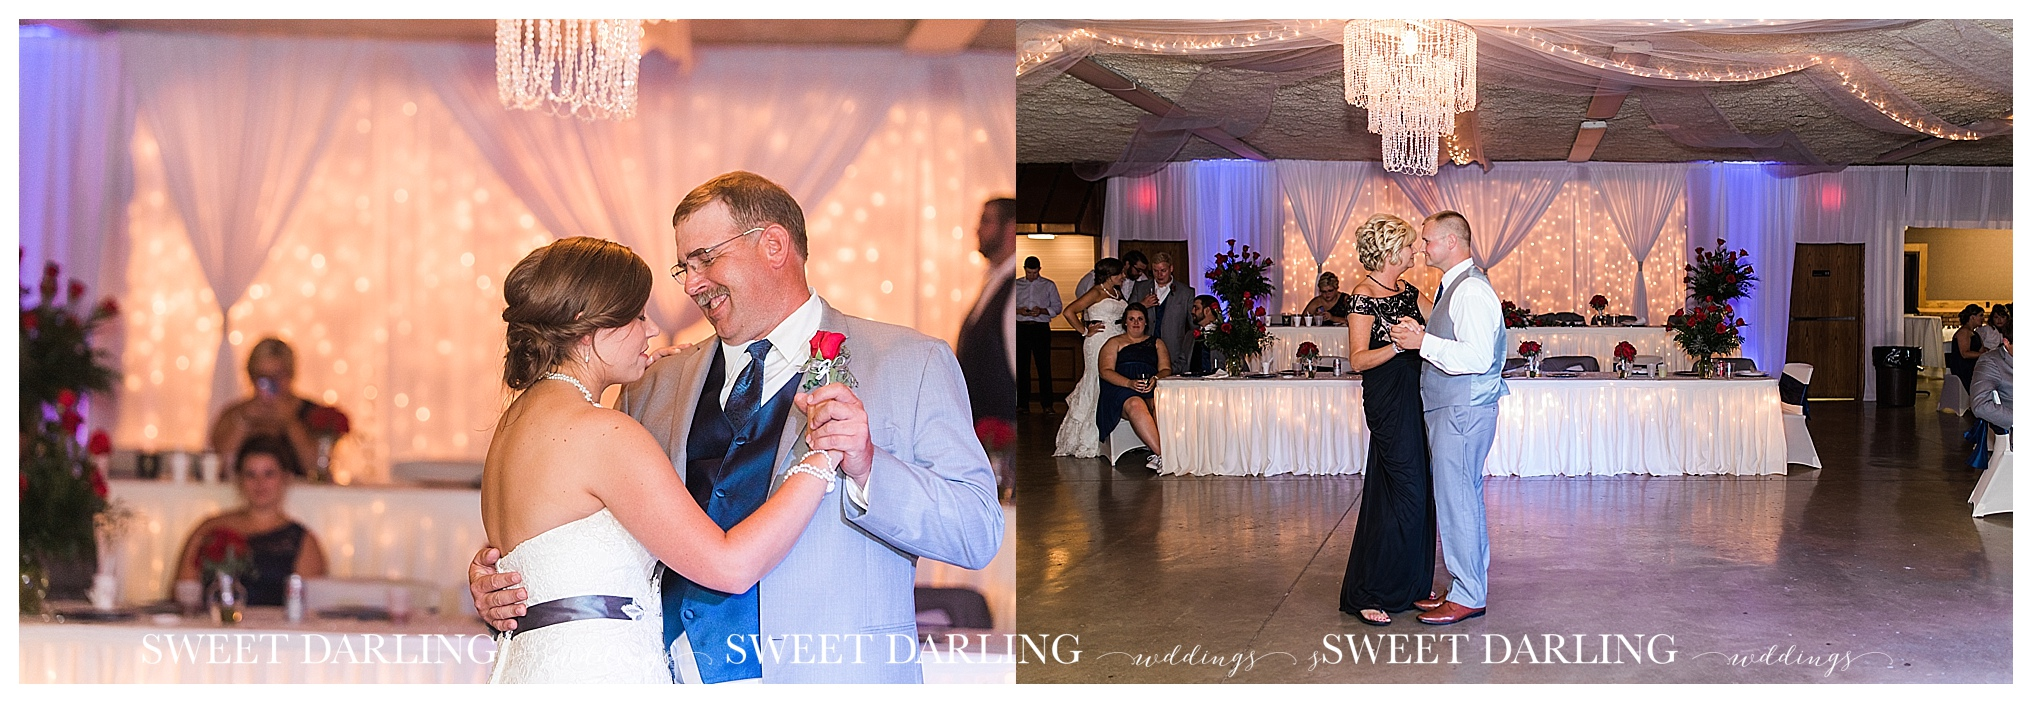 champaign-county-royal-paxton-illinois-sweet-darling-weddings-photography-red-navy-roses_1395.jpg